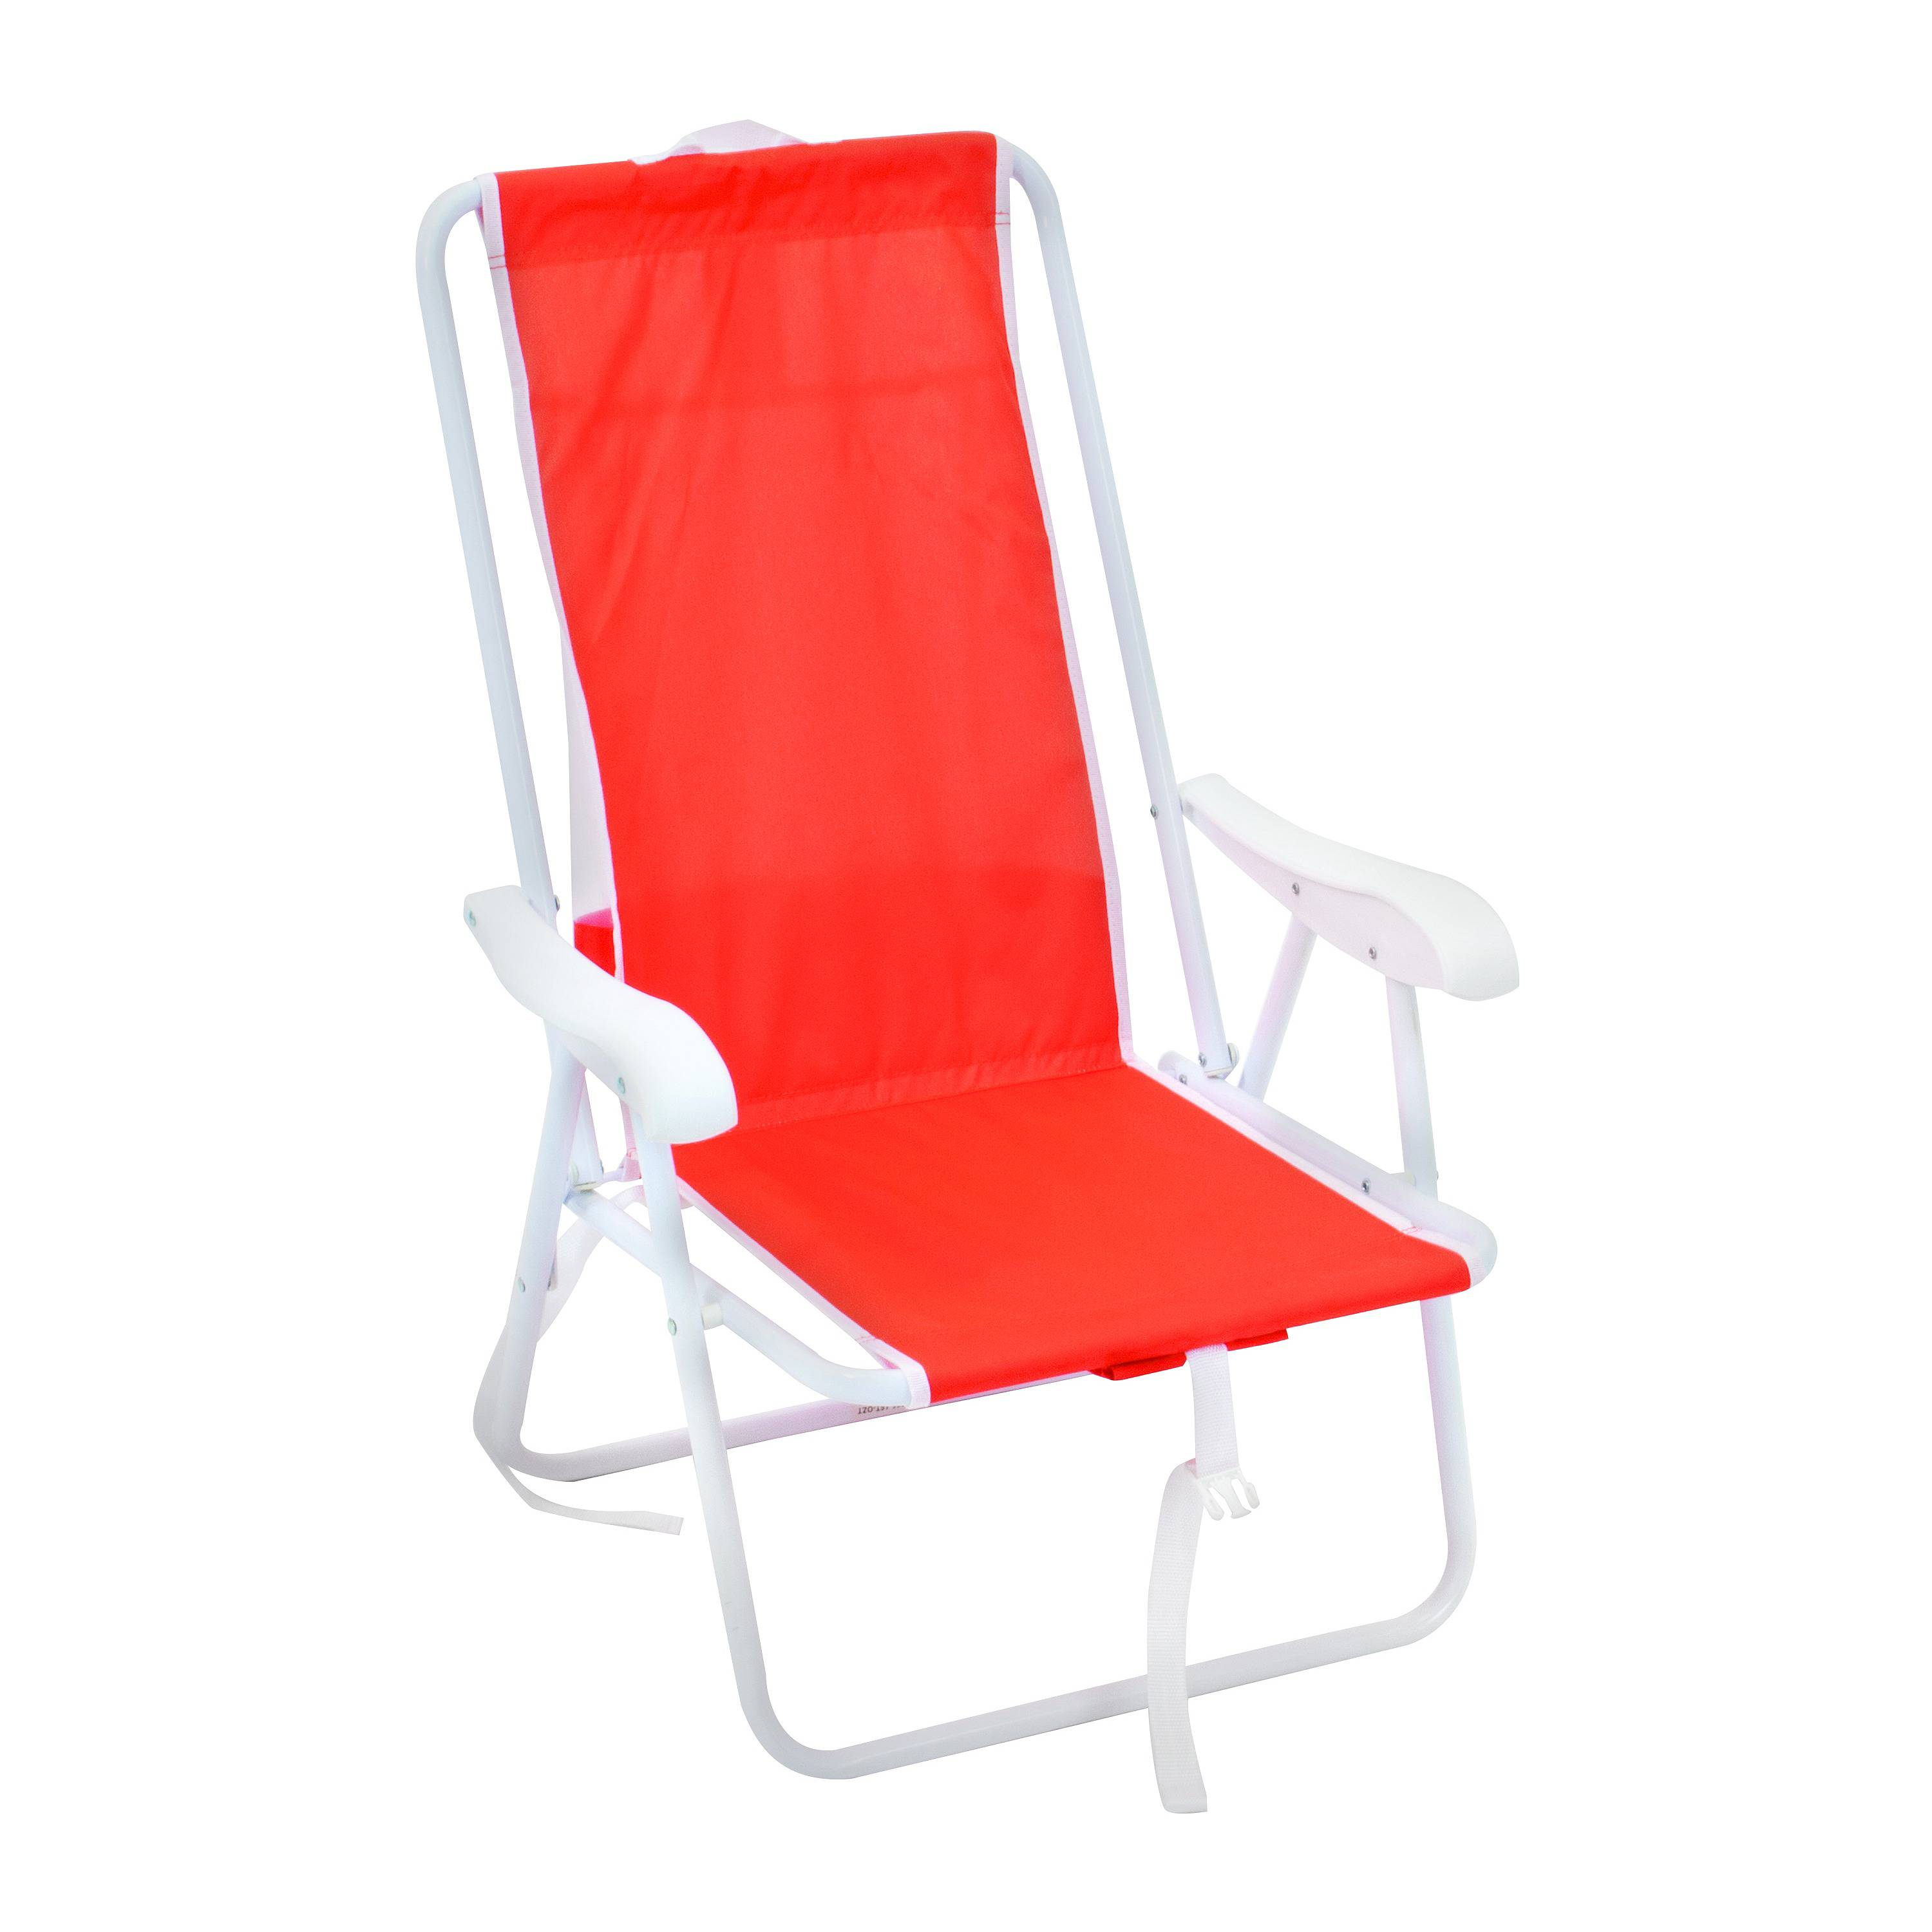 NEW Rio Backpack Beach Chair With Molded Plastic Arms